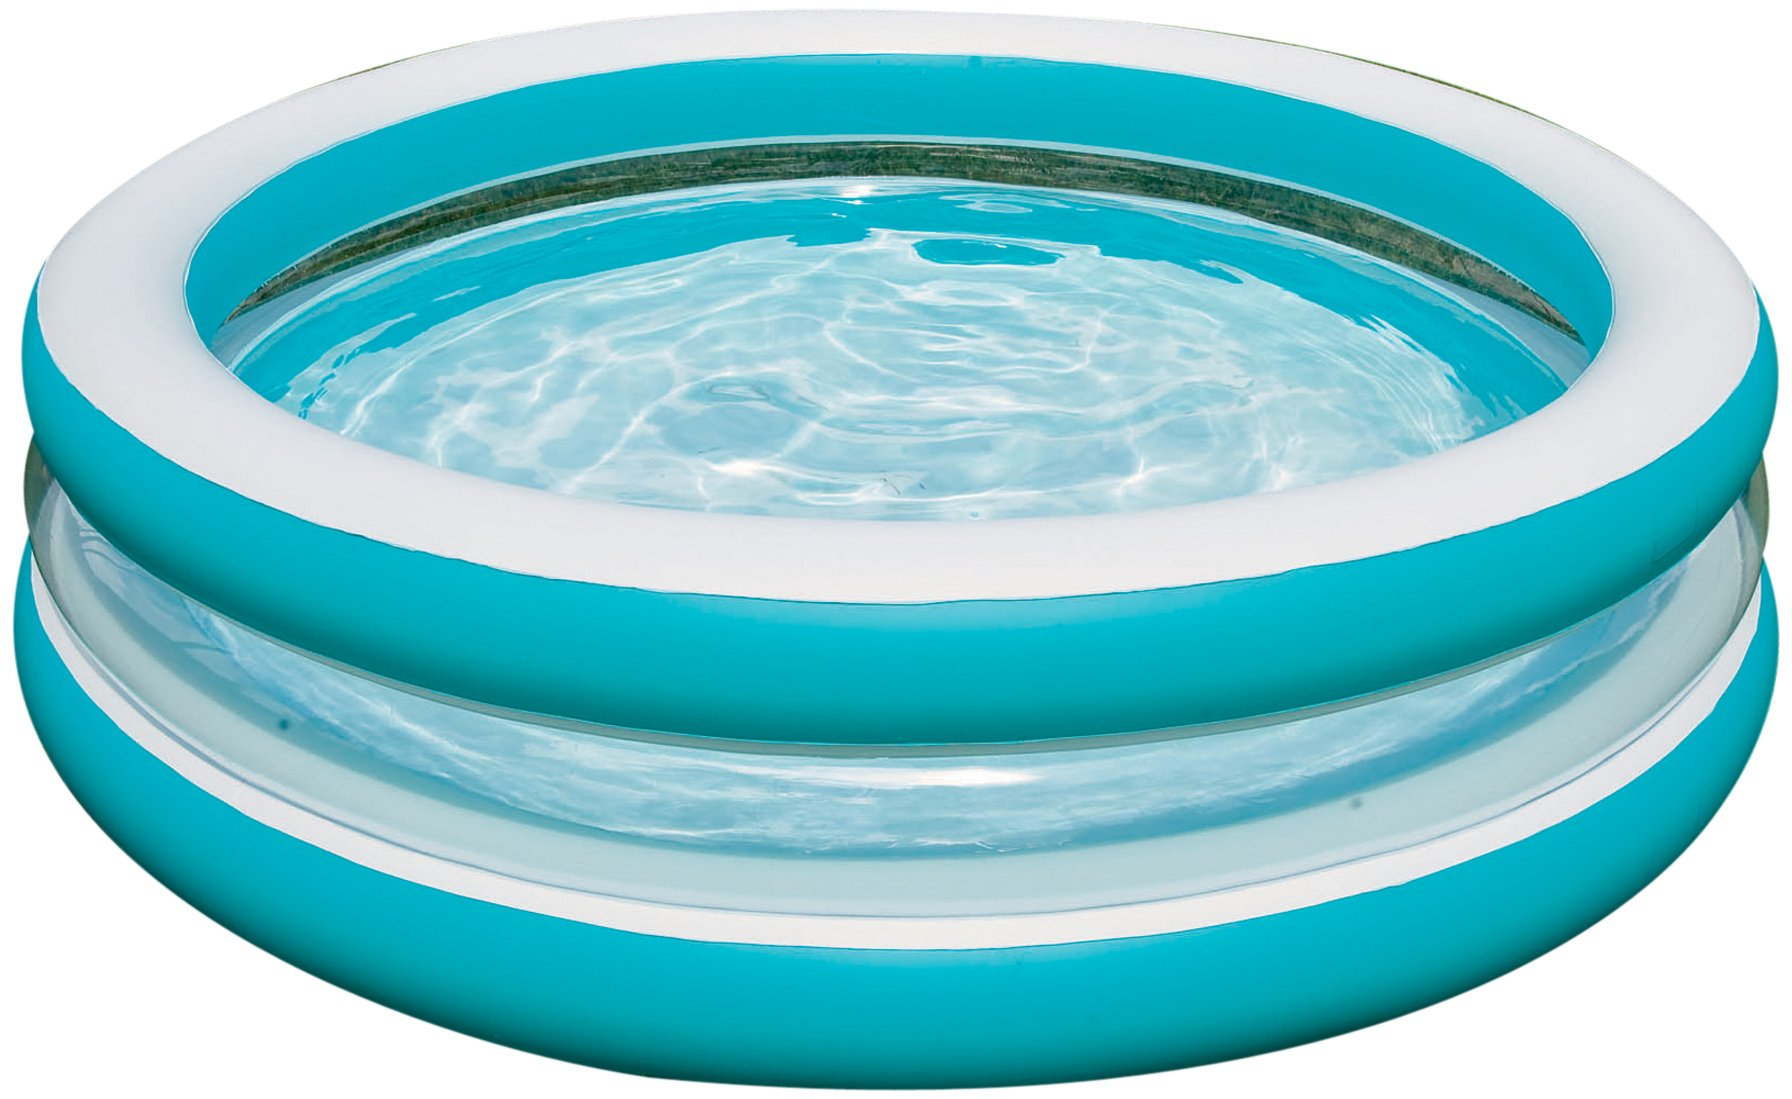 Intex Swim Center See-Through Inflatable Pool, 80'' X 20''